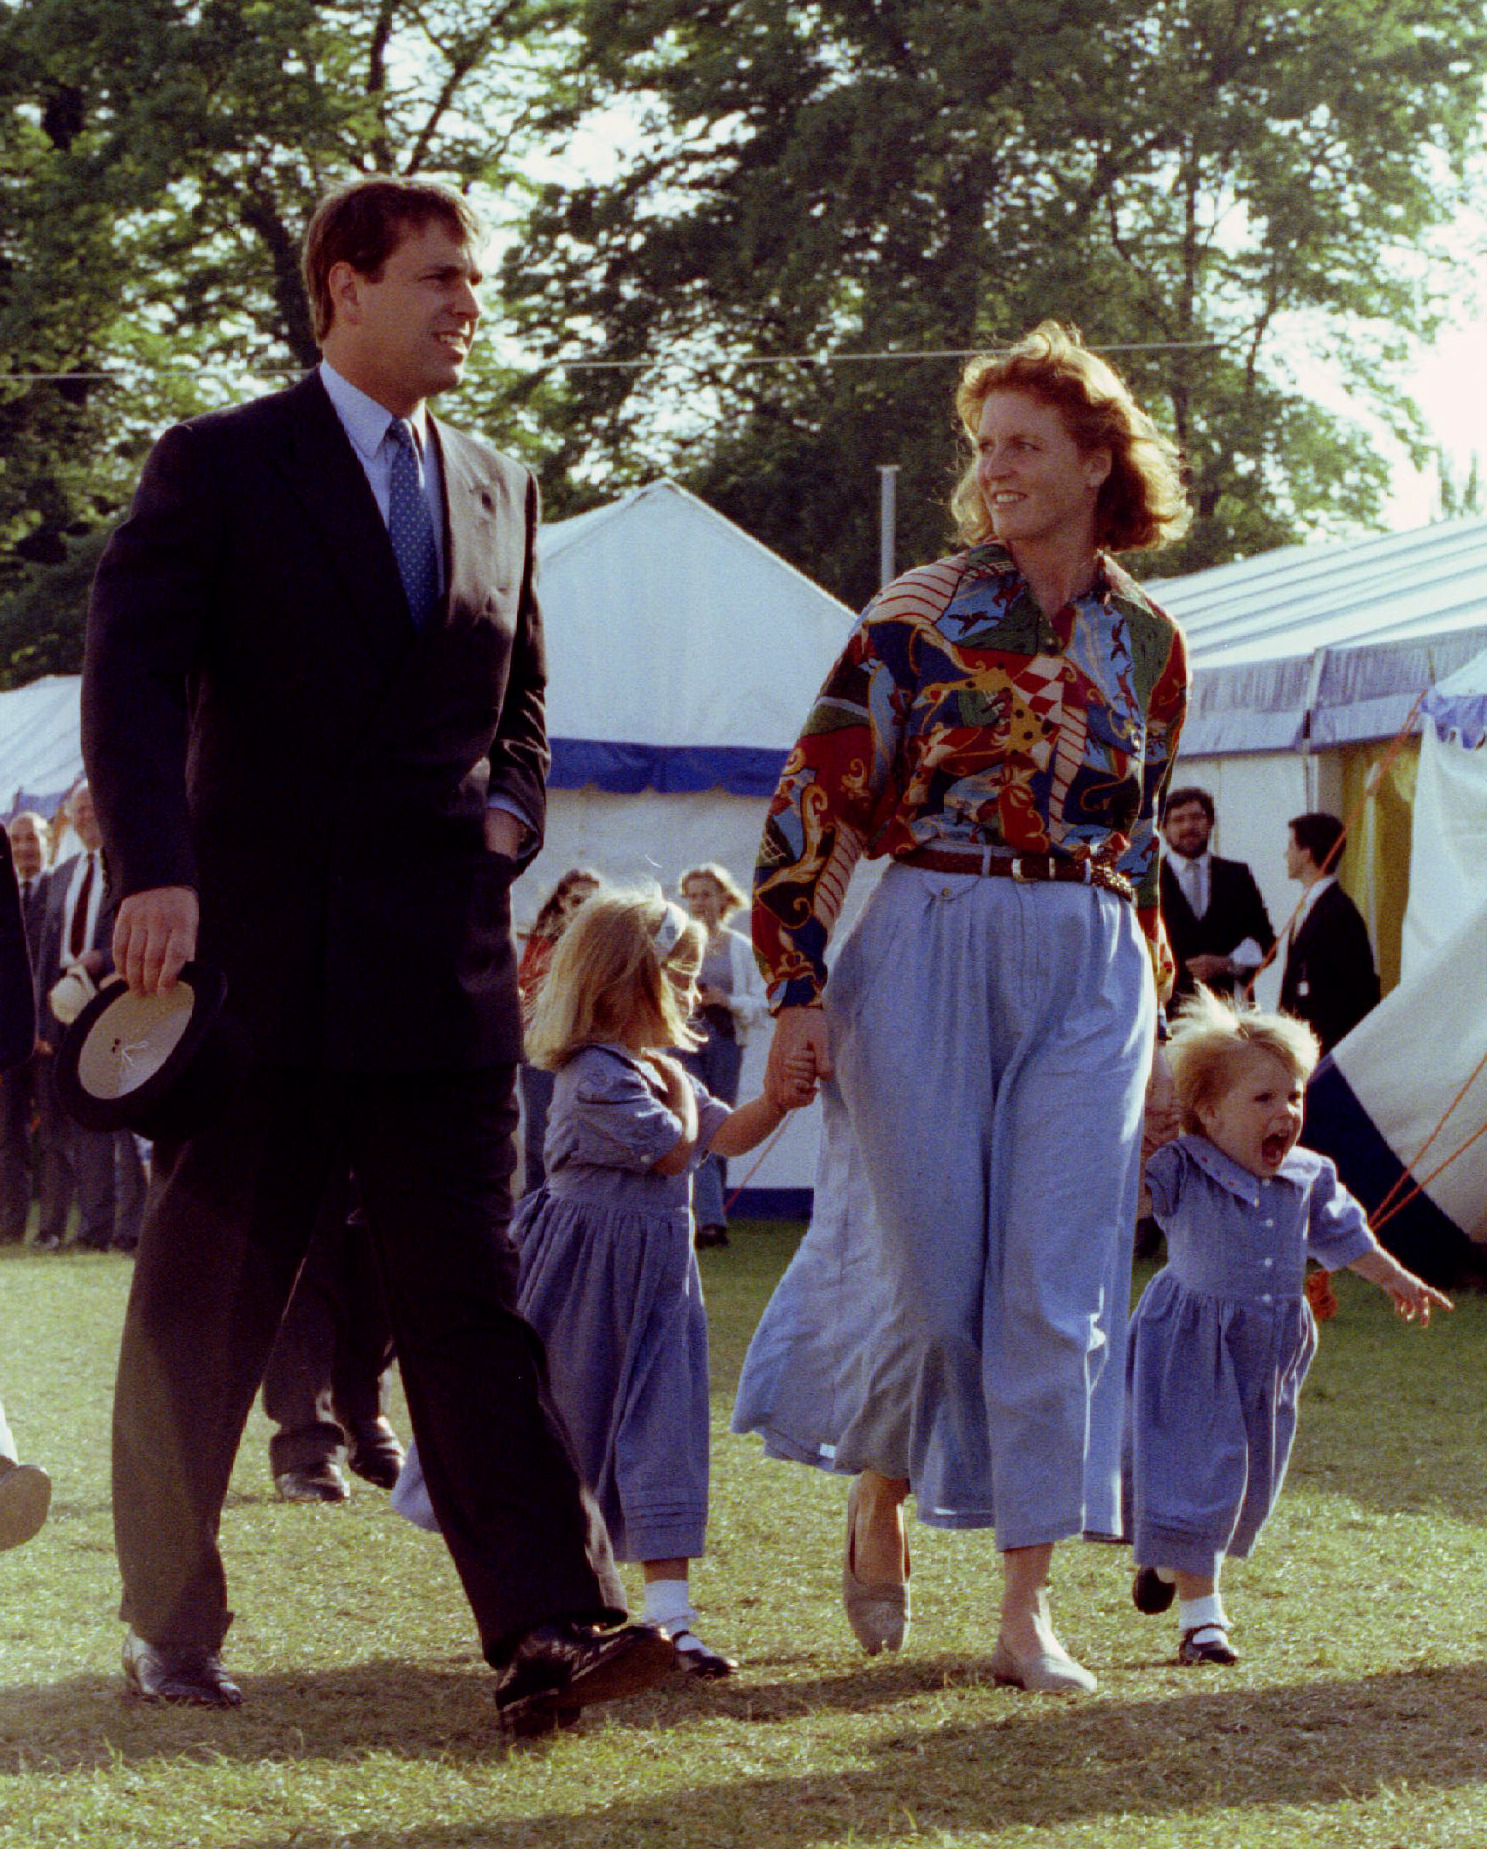 The Duke and Duchess of York with their children Princess Beatrice (c) and Eugenie during the Royal Windsor Horse show last year (May 16 1992) . Buckingham Palace today announced the couple's formal seperation June 28. - PBEAHUNIVDQ